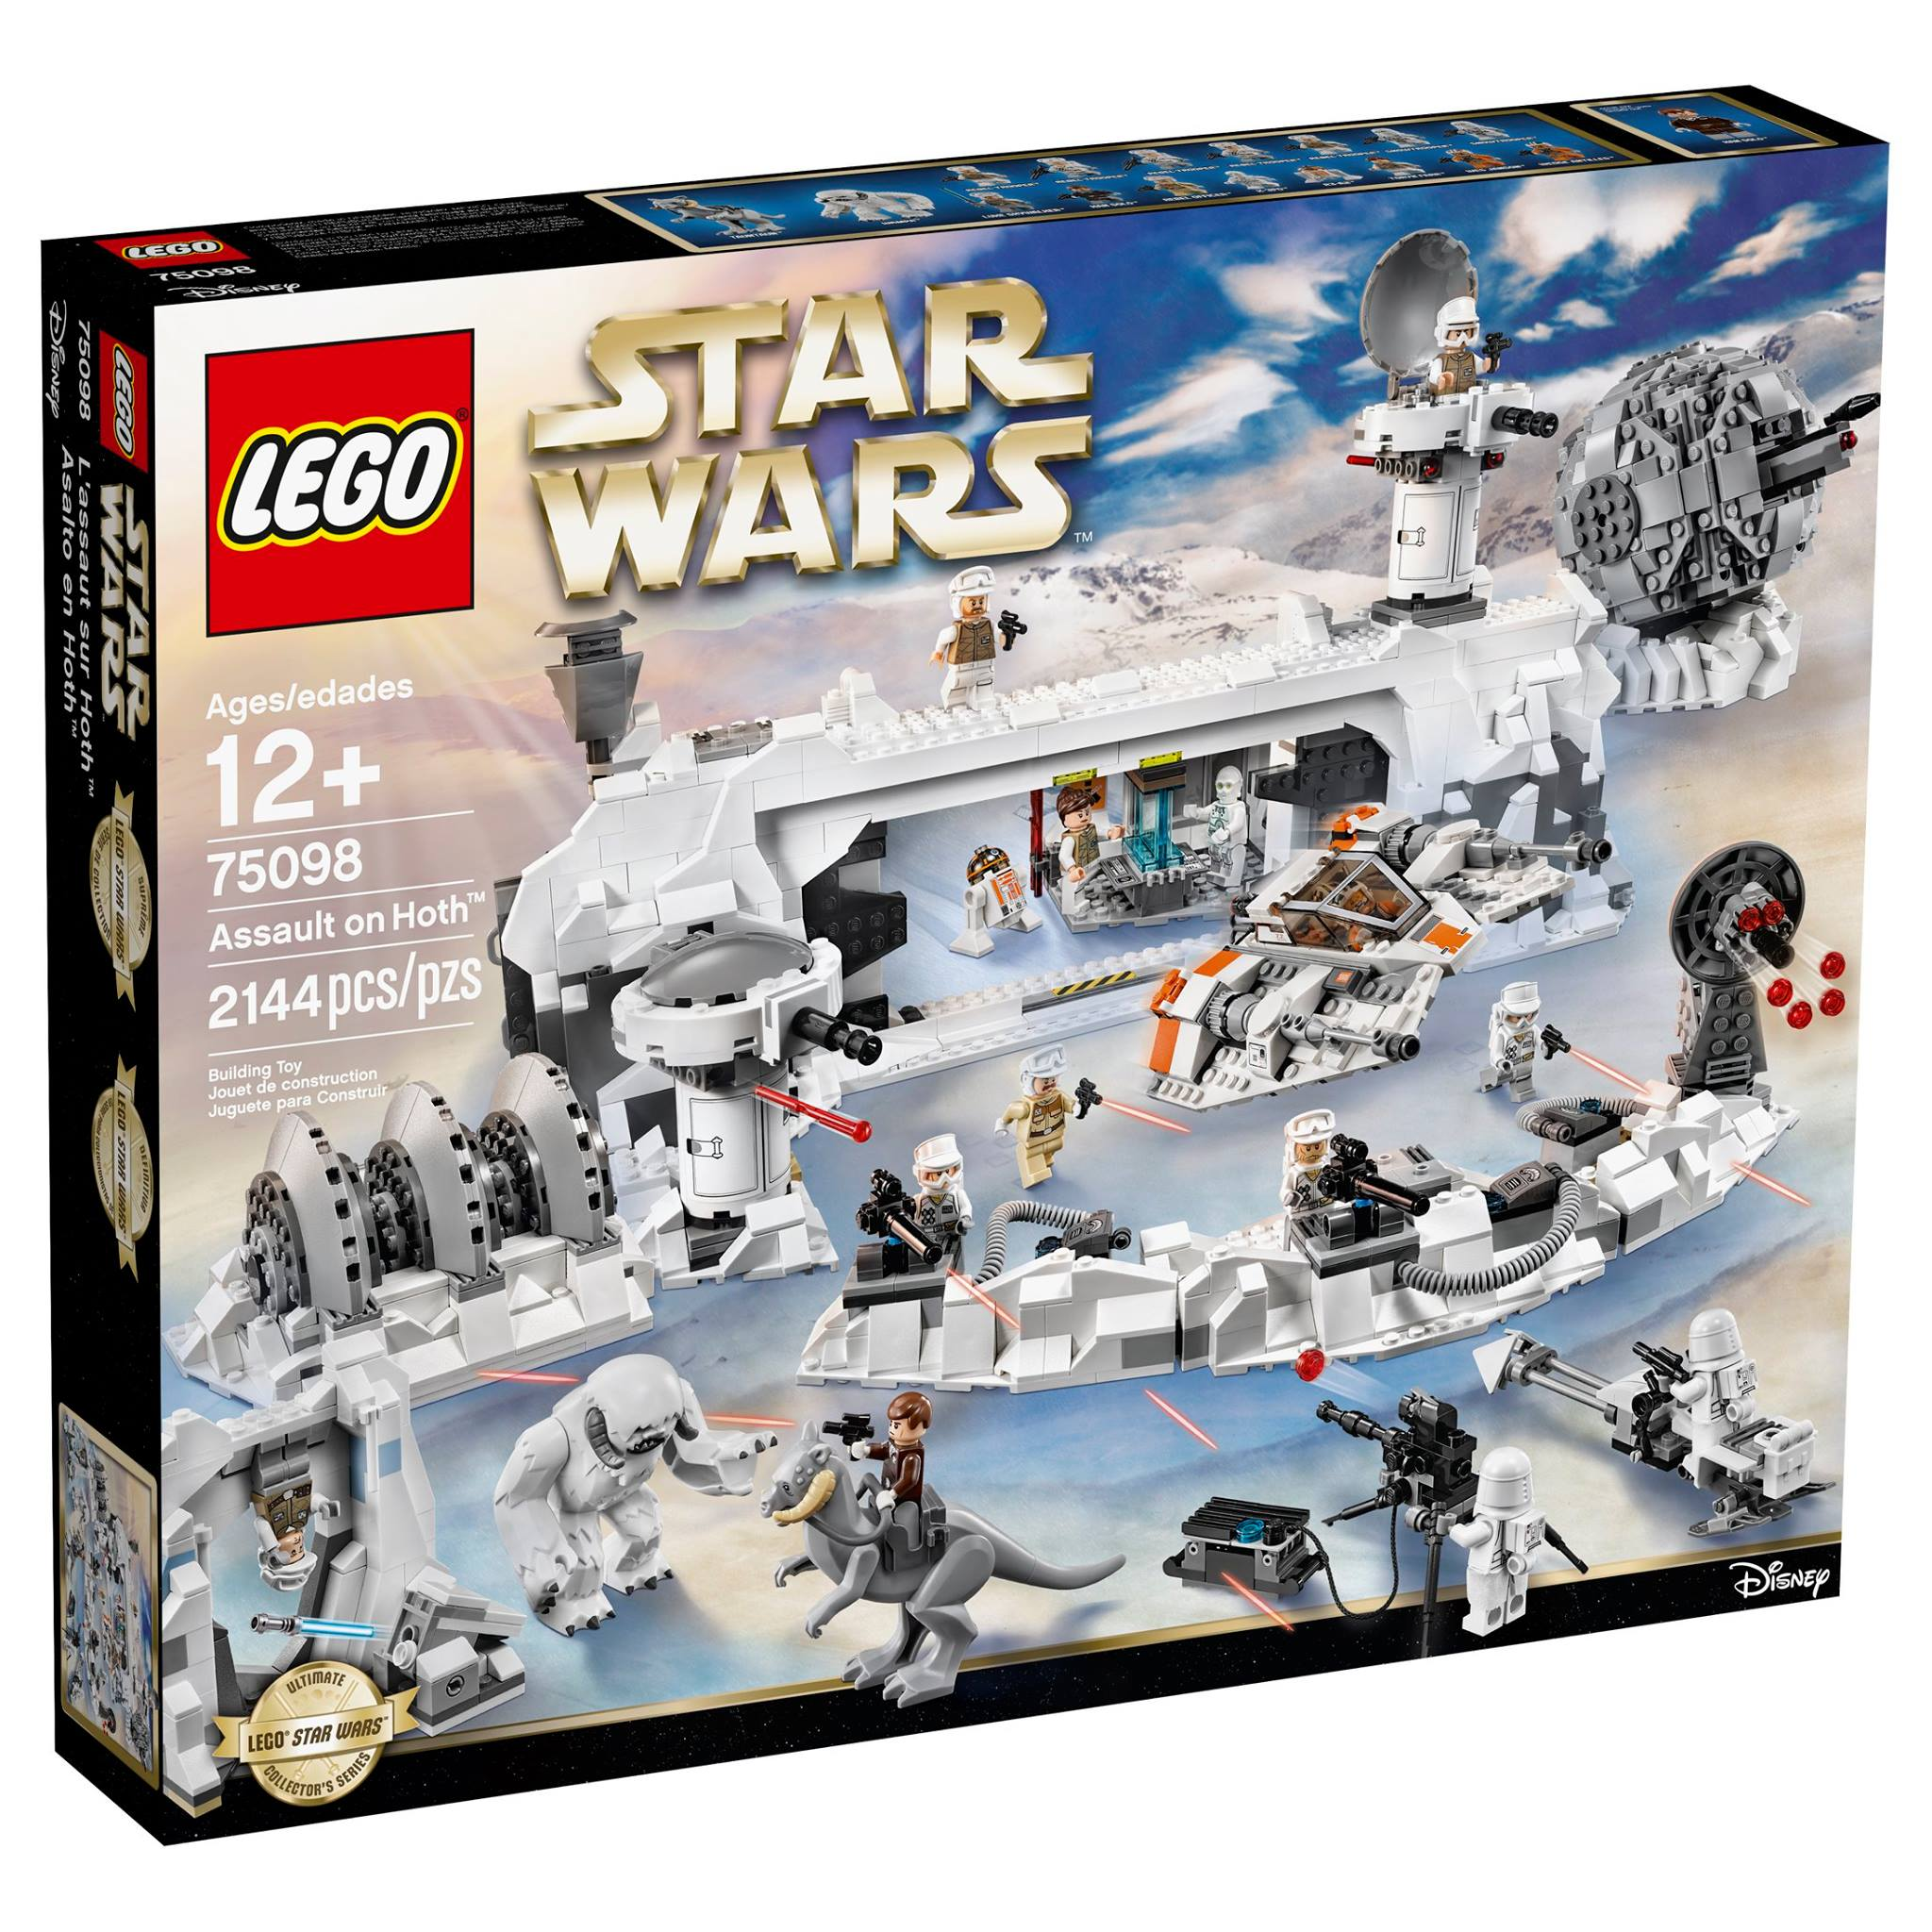 LEGO Star Wars Ultimate Collector's Series Assault On Hoth (75098) Set